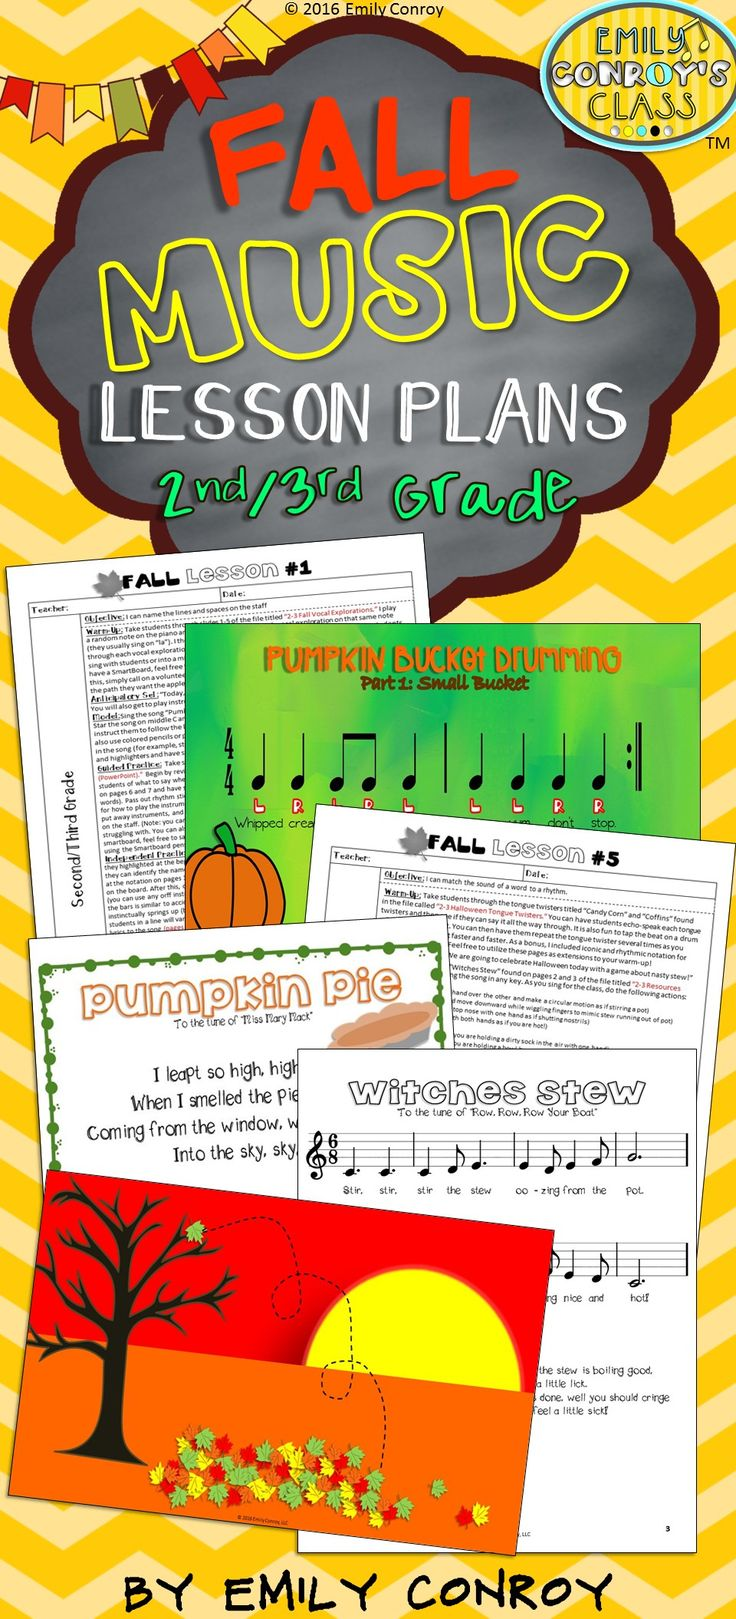 These lessons include 6 fall-themed music lesson plans for second or third grade music students along with 150 pages of resources! Each lesson includes the following sections: objective, warm-up, anticipatory set, model, guided practice, and independent practice. They even include 2 original songs with notation and lyric sheets as well as two original bucket drumming pieces!